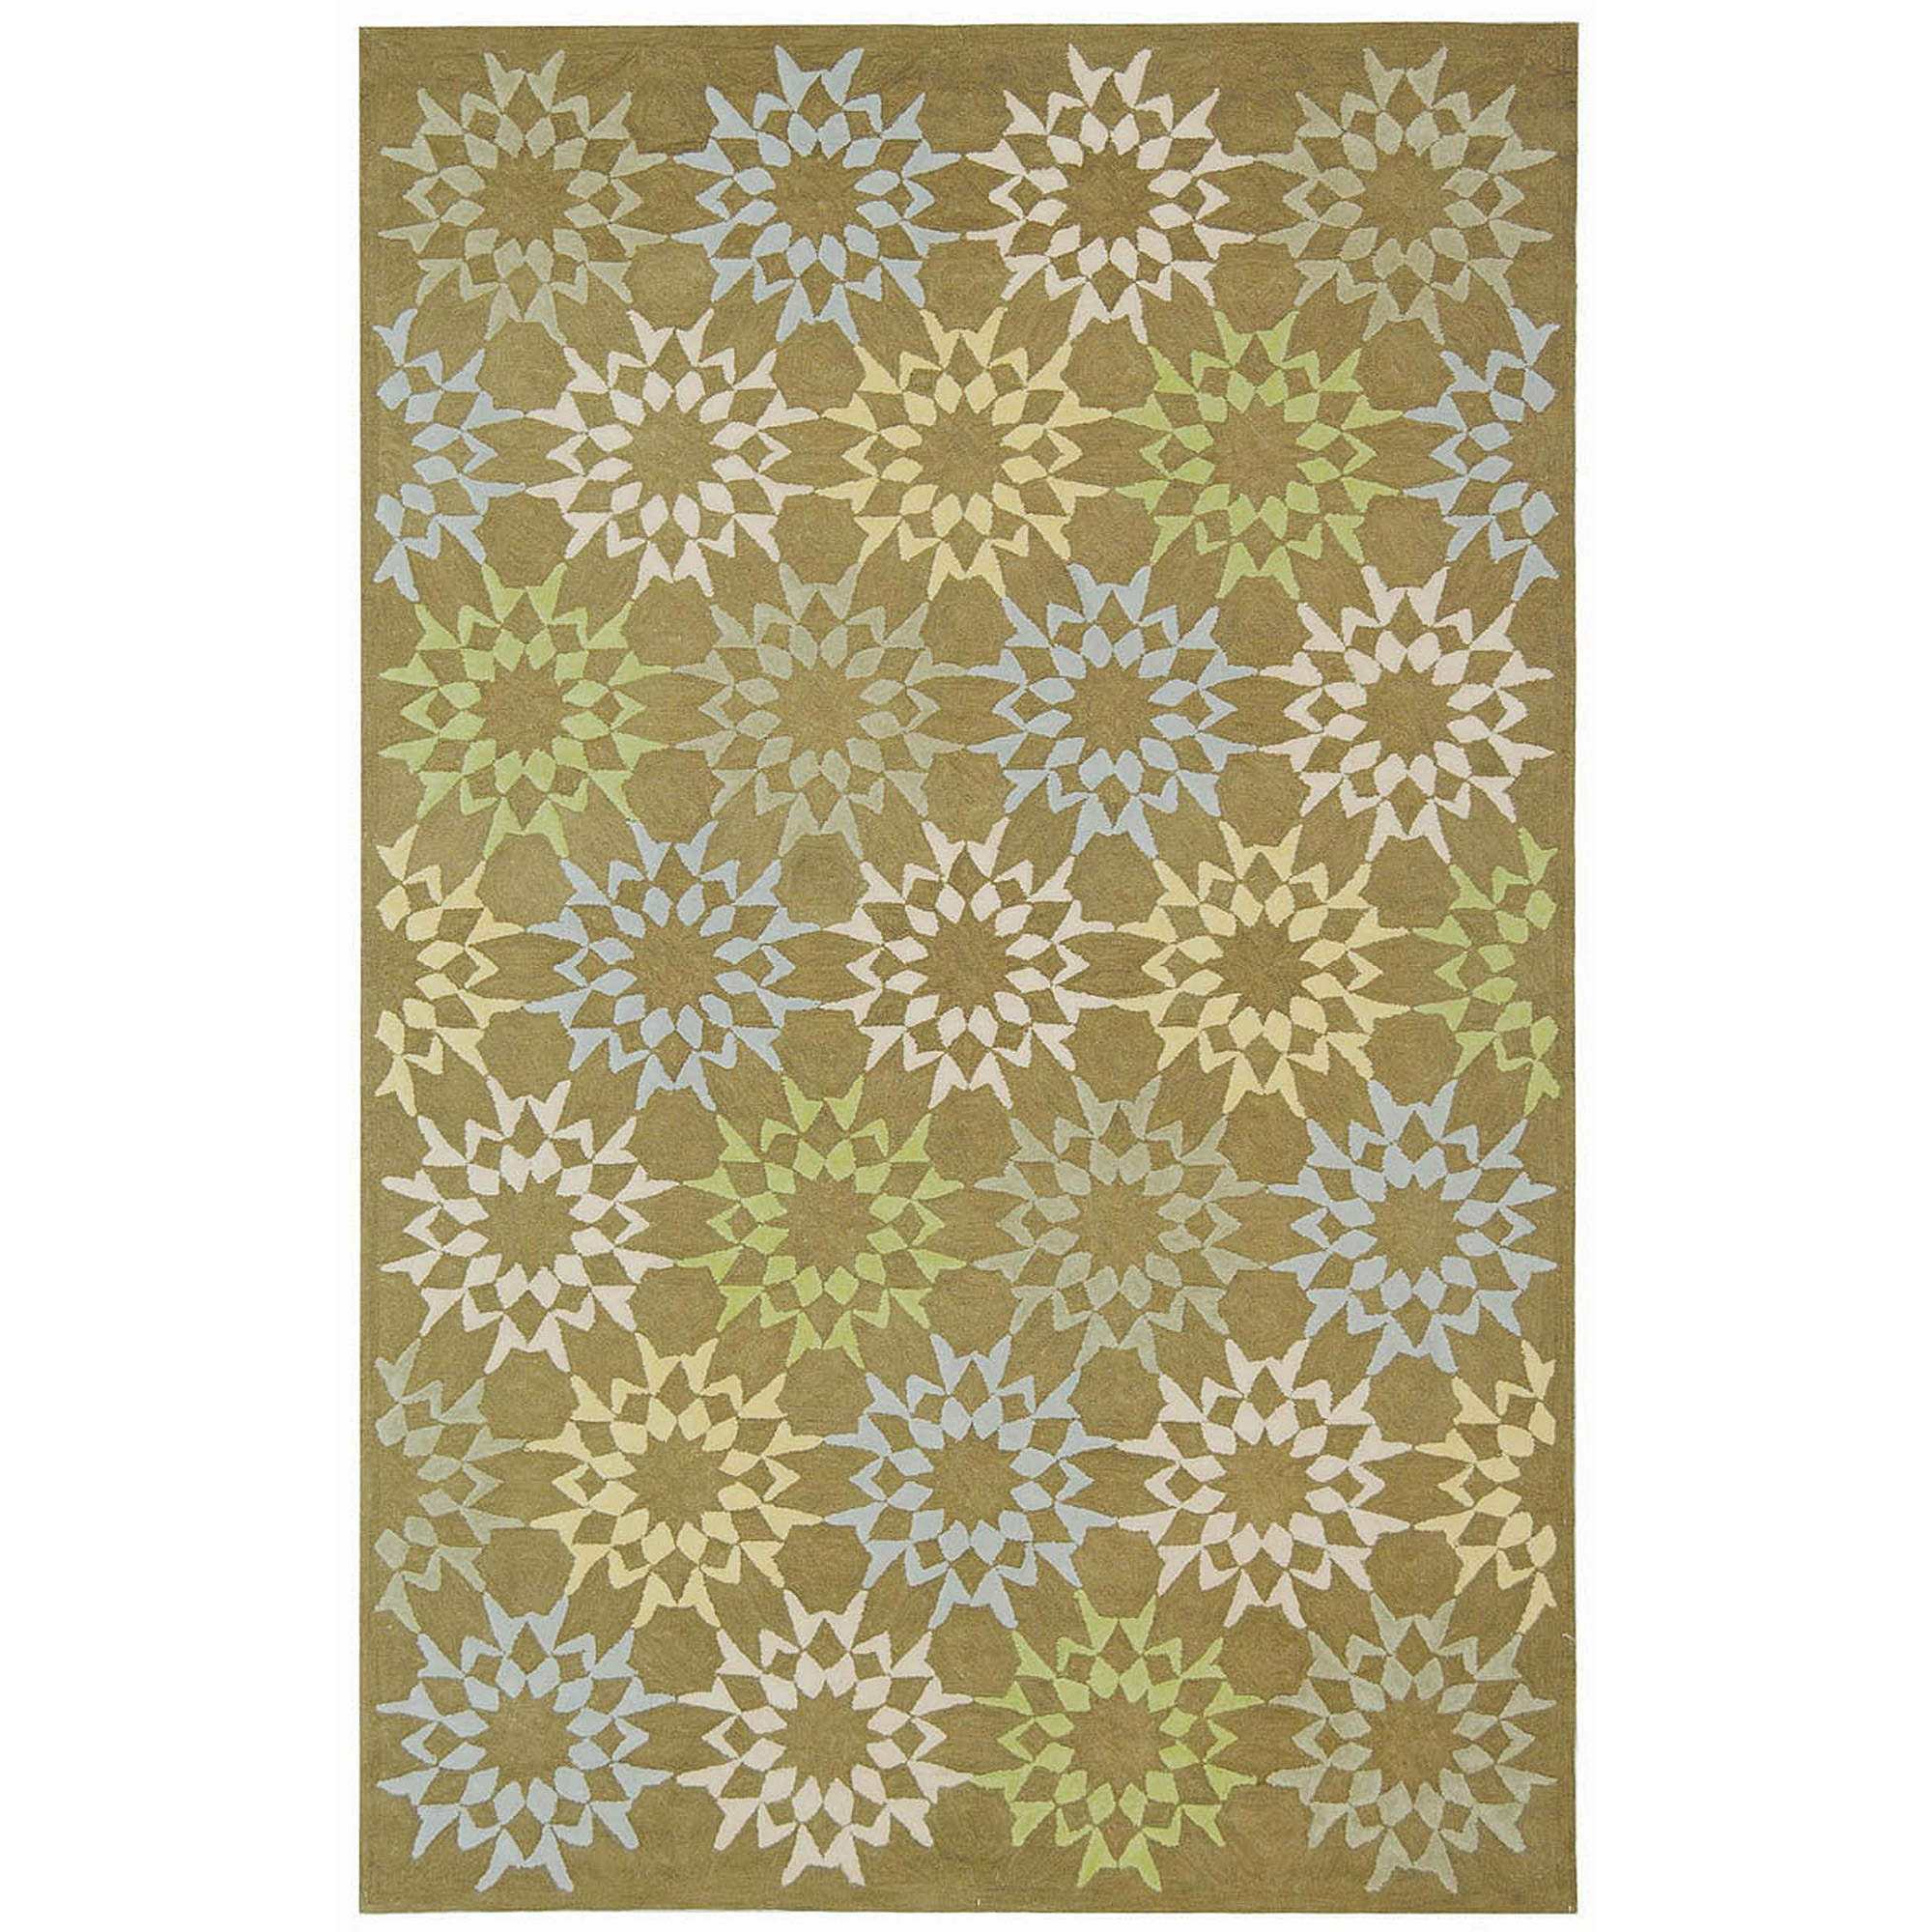 Safavieh Martha Stewart Quilt Pebble Cotton Area Rug